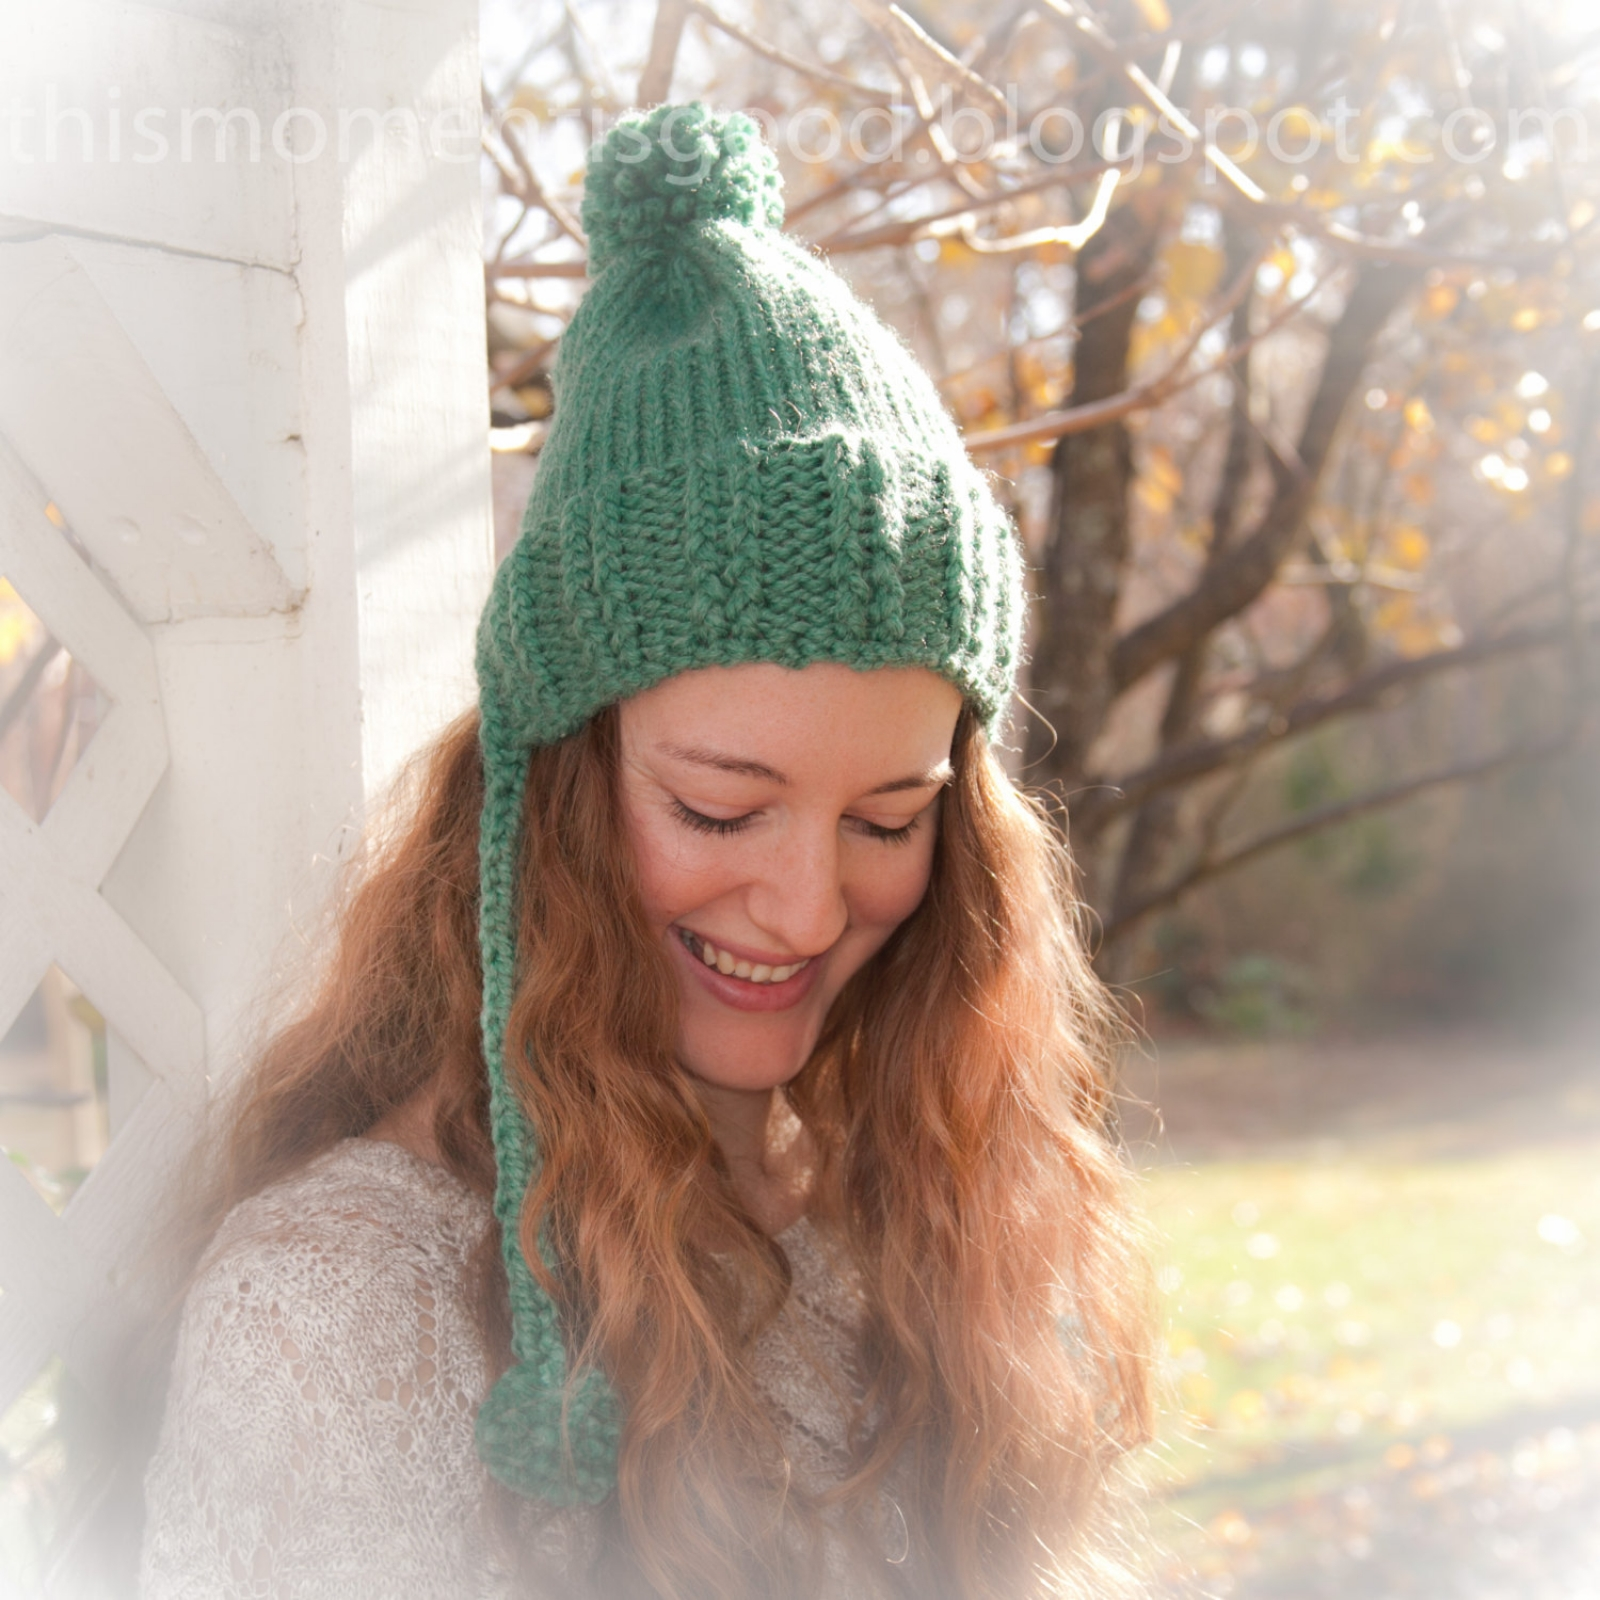 Loom Knit Baby Hat With Ear Flaps : Loom knit earflap split brim hat this moment is good